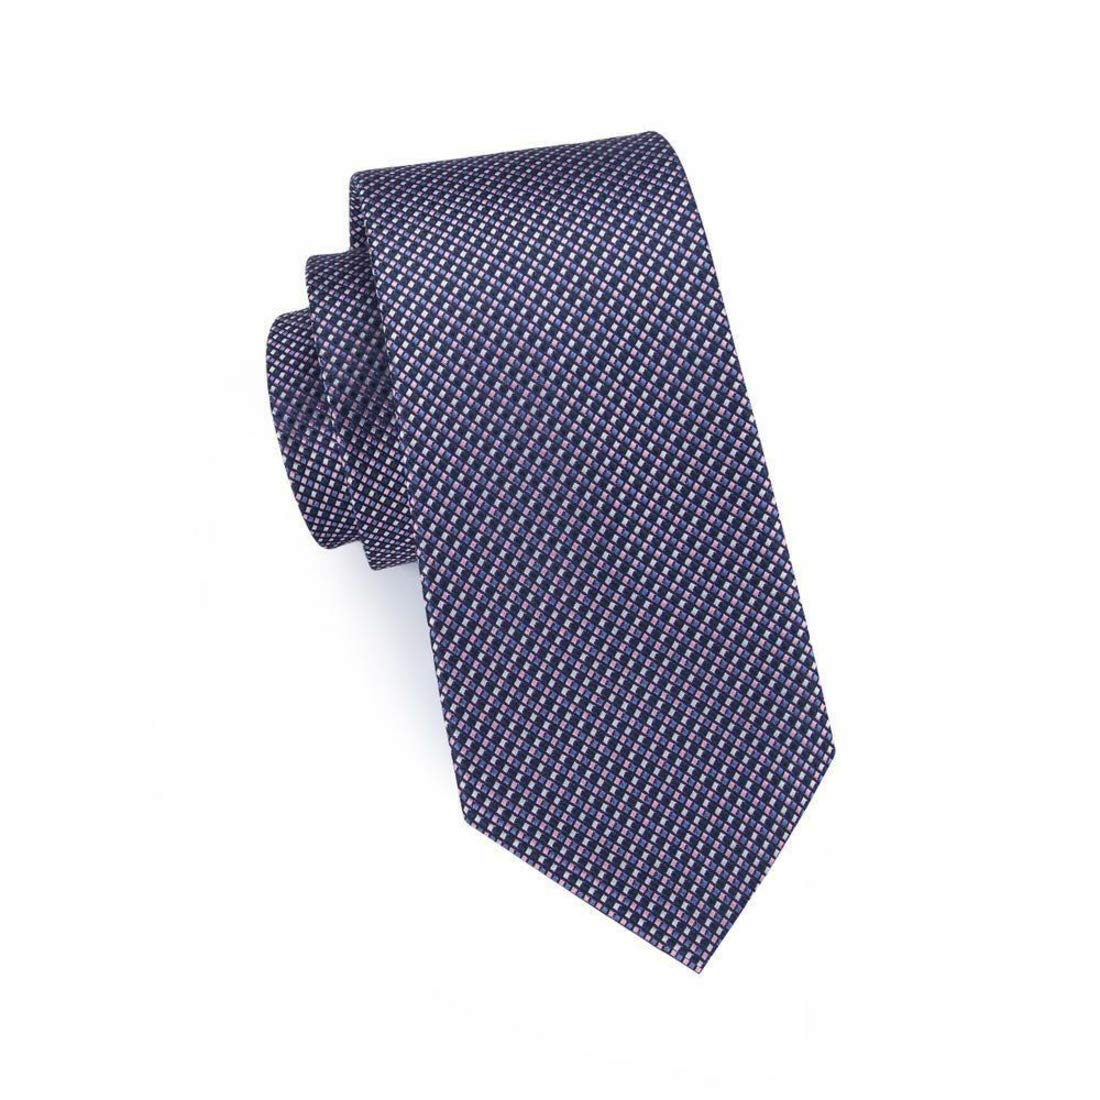 Irvint /& Co Blue Pink Striped Plaids/&Checks Jacquard Silk USA Mens Classic Necktie With Pocket Square And Cufflinks Woven Set